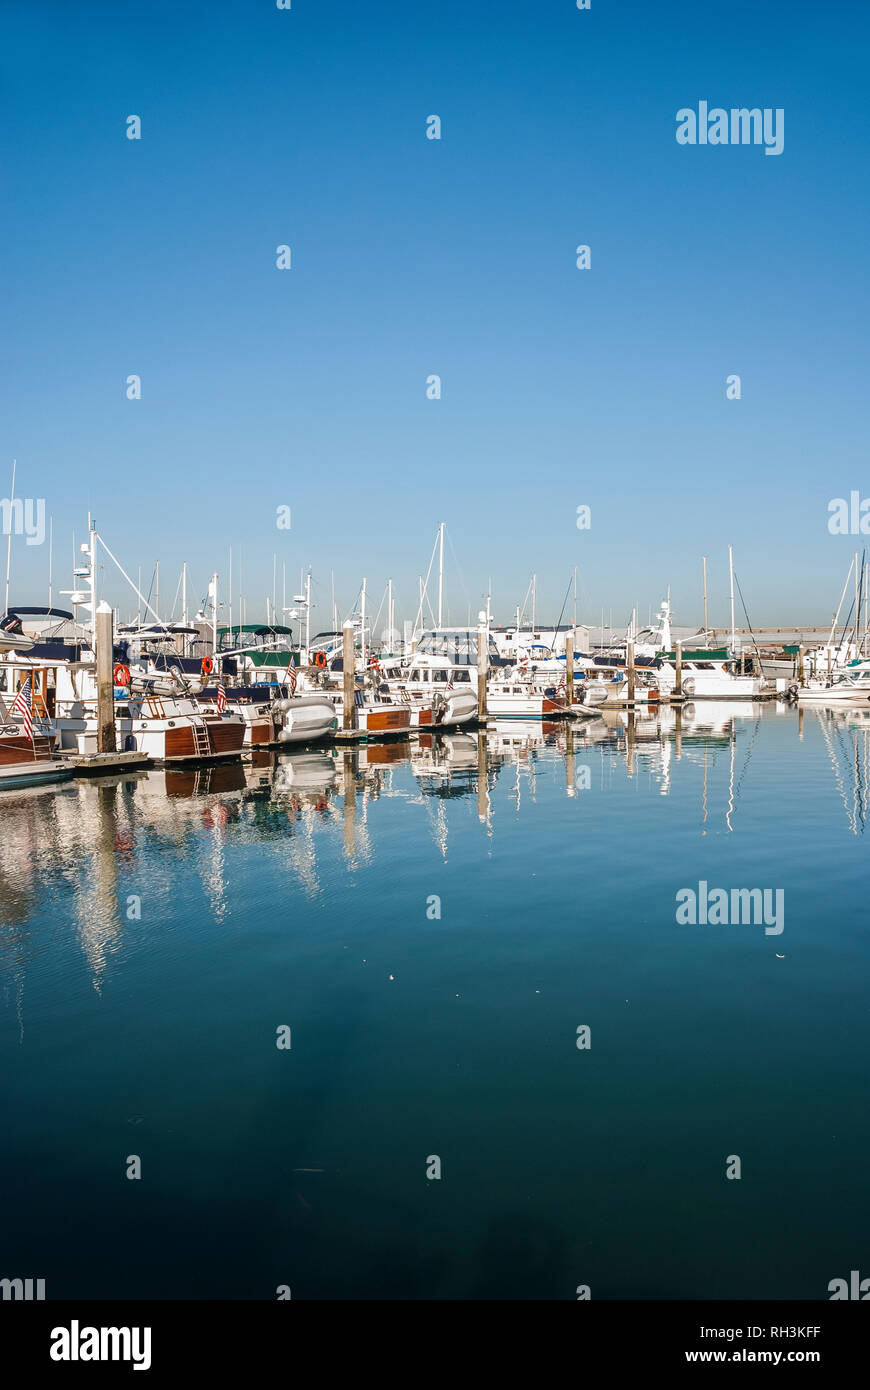 Boats are in a line at a marina in Bellingham, Washington. - Stock Image